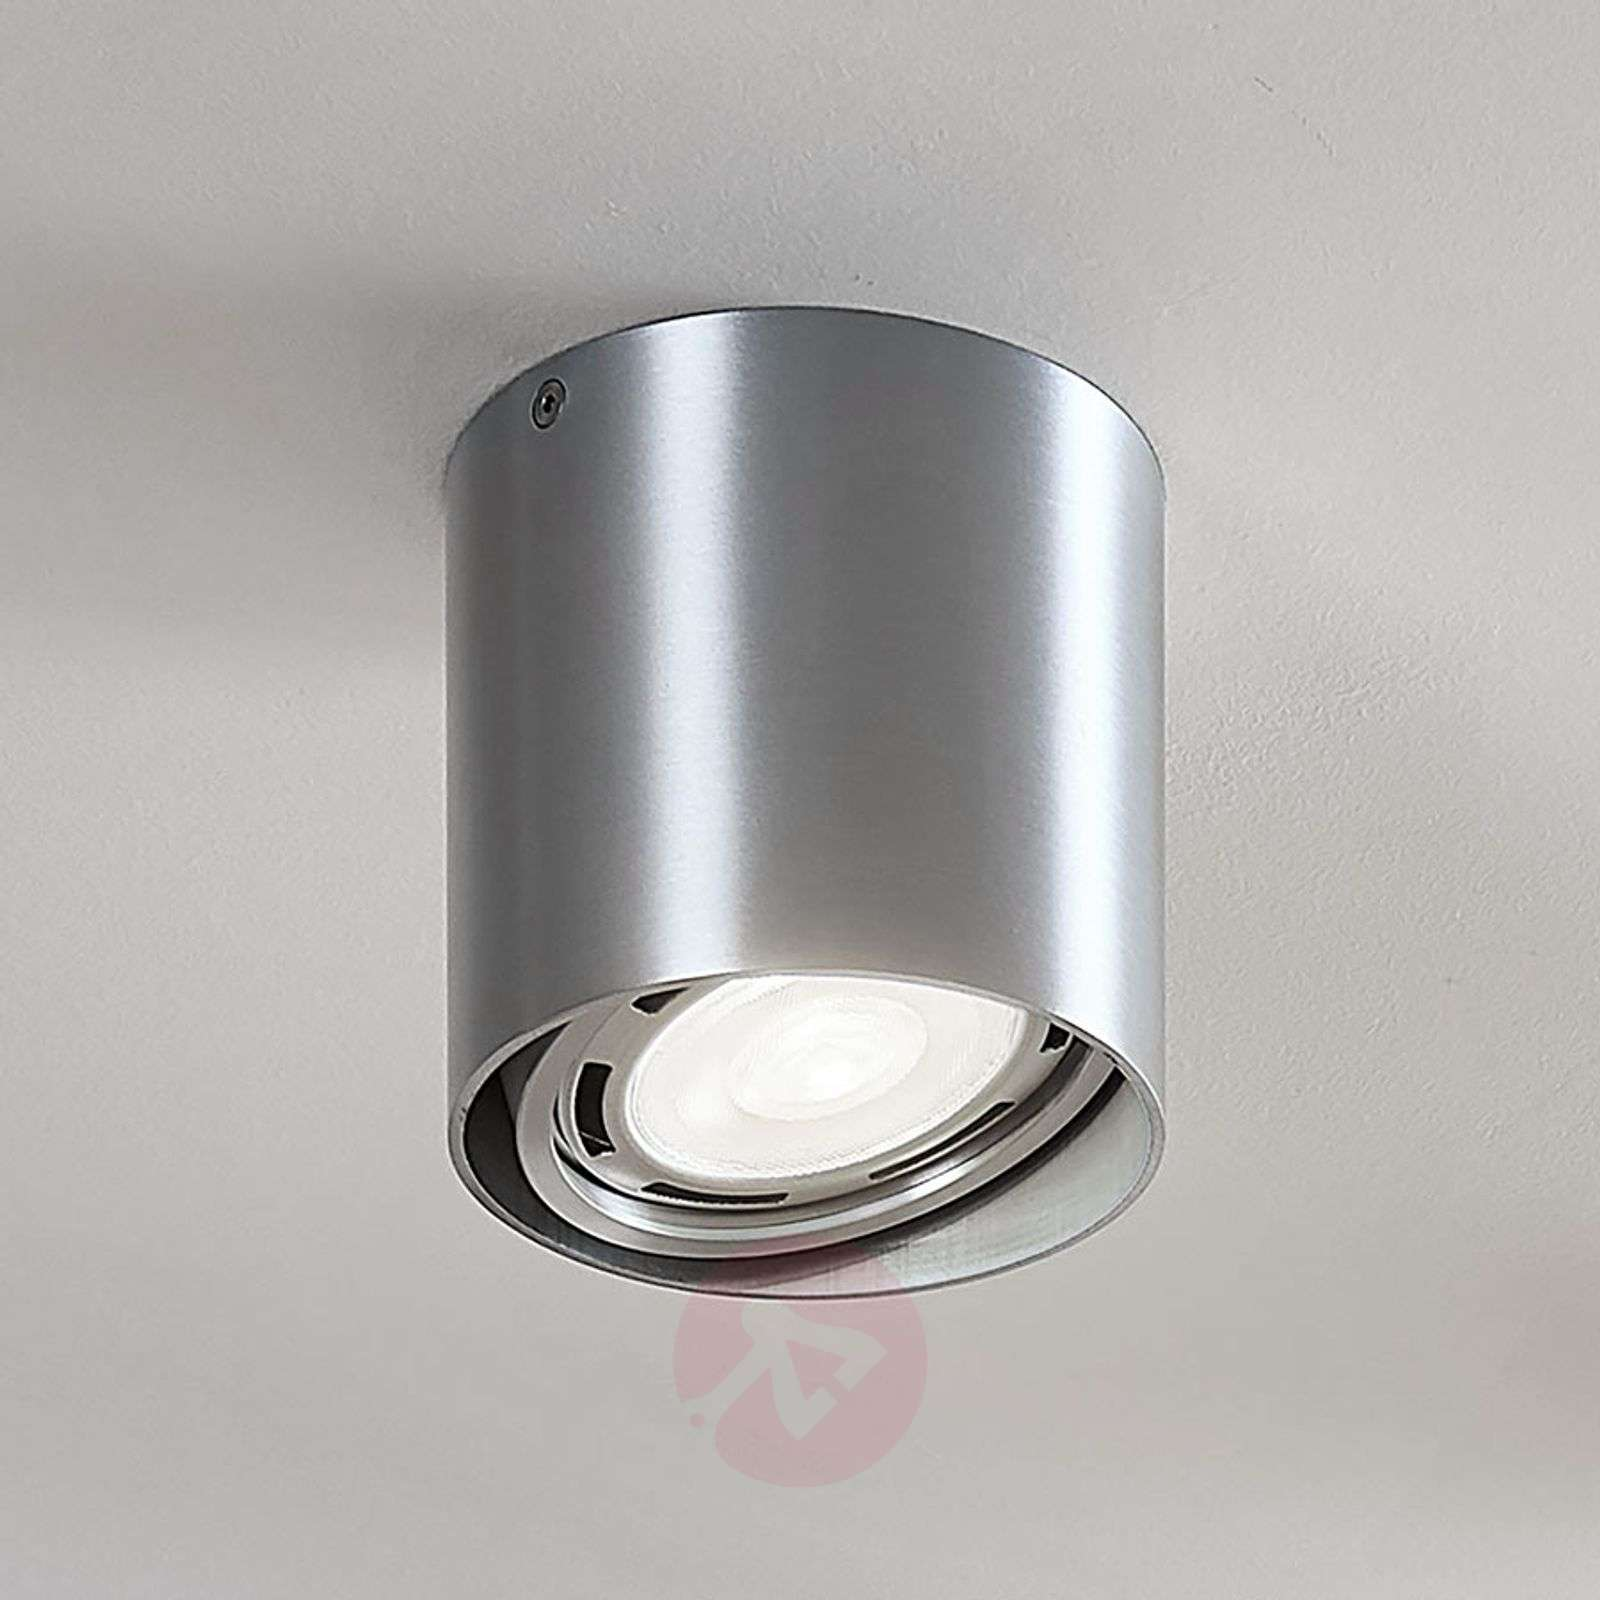 LED downlight Rosalie, dimbaar 1-lamp, rond, alu-9621904-03